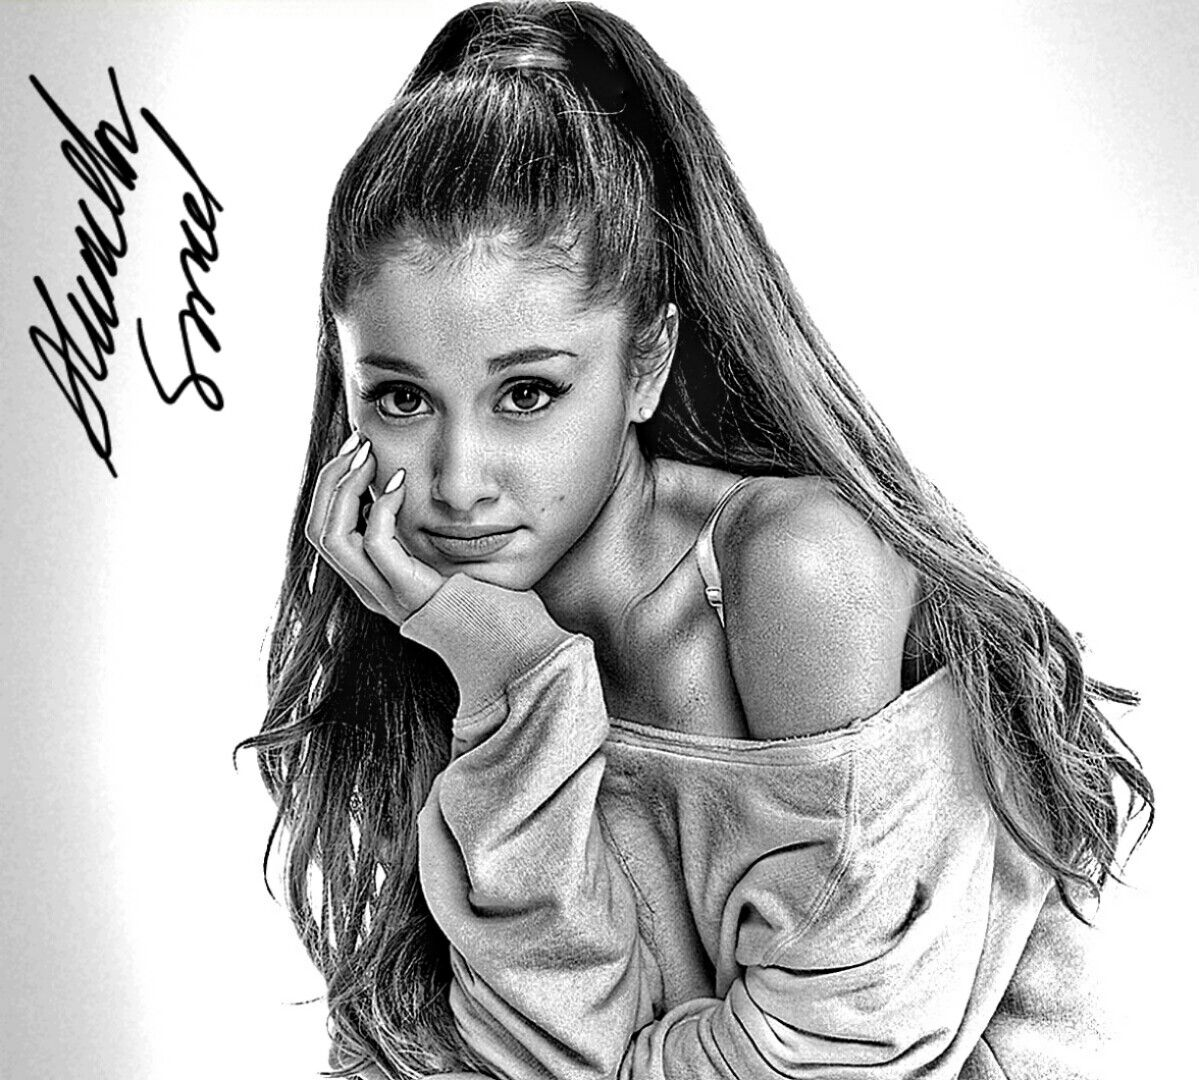 A hyperrealistic drawing of ariana grande hyperrealistic drawing pencil sketching pencil drawings art